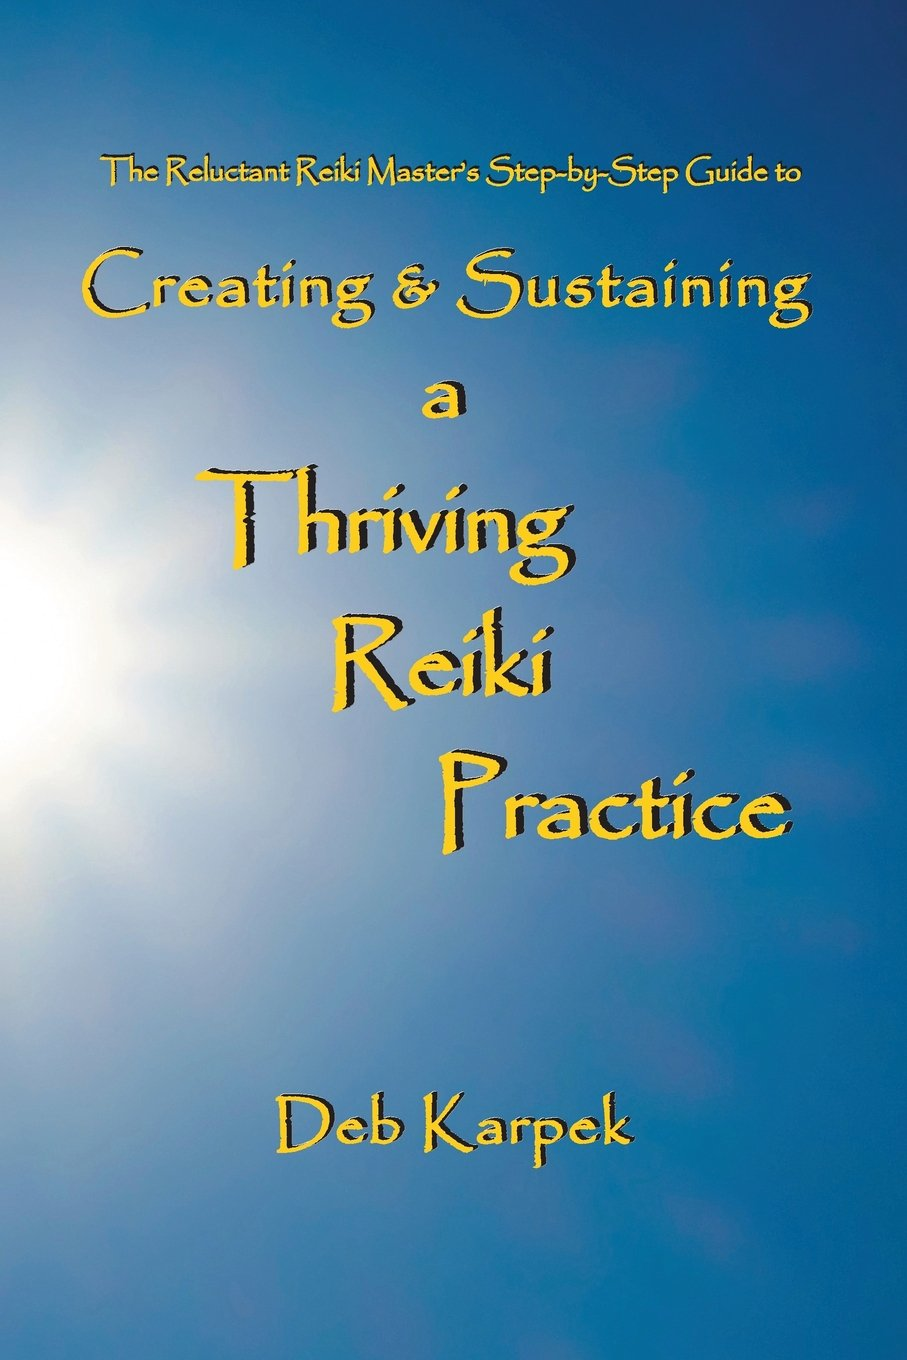 Buy The Reluctant Reiki Master's Step-by-Step Guide to Creating and Sustaining a Thriving Reiki Practice